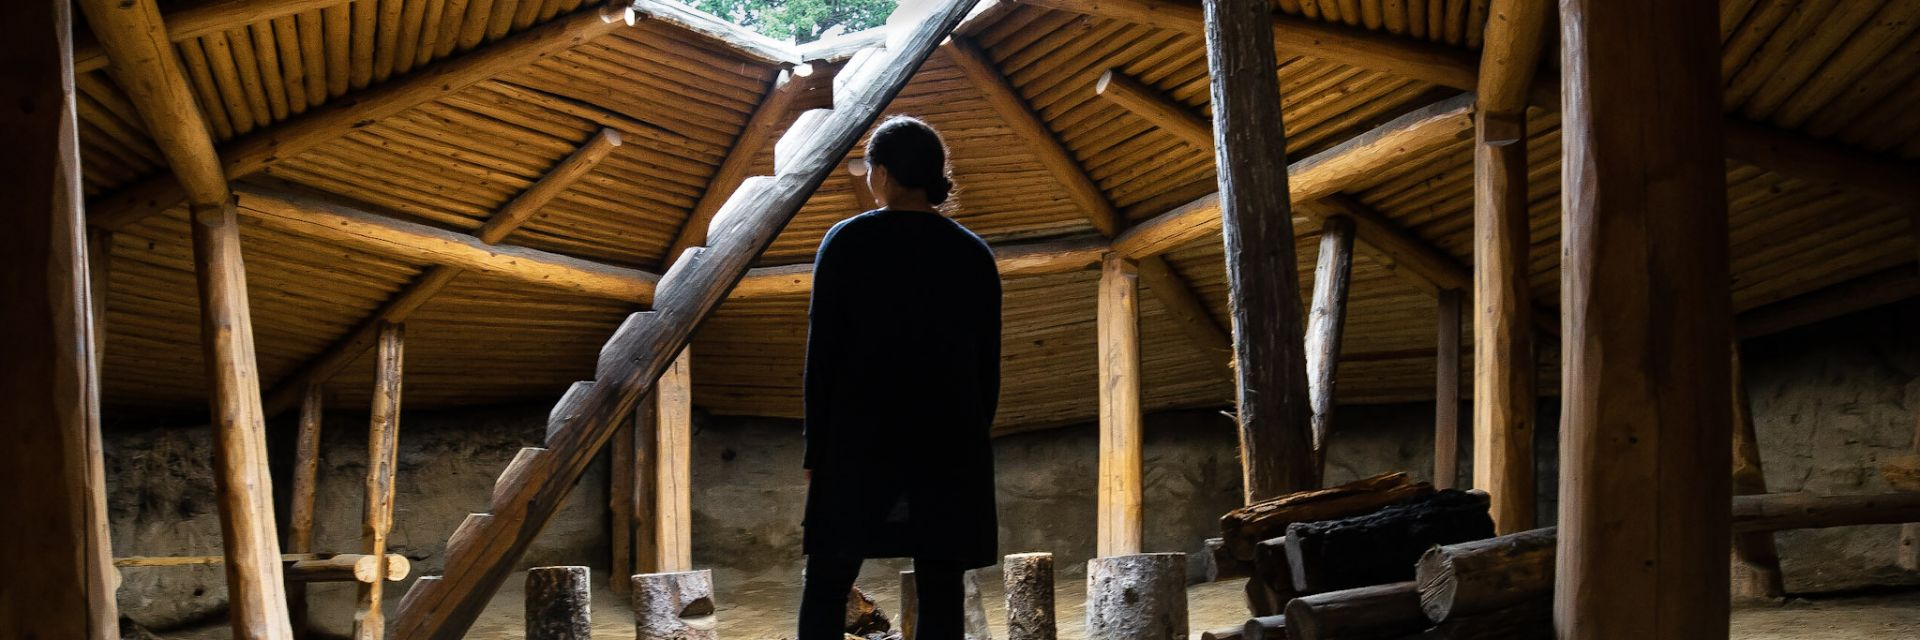 An interior view of a woman standing in a traditional Indigenous hut